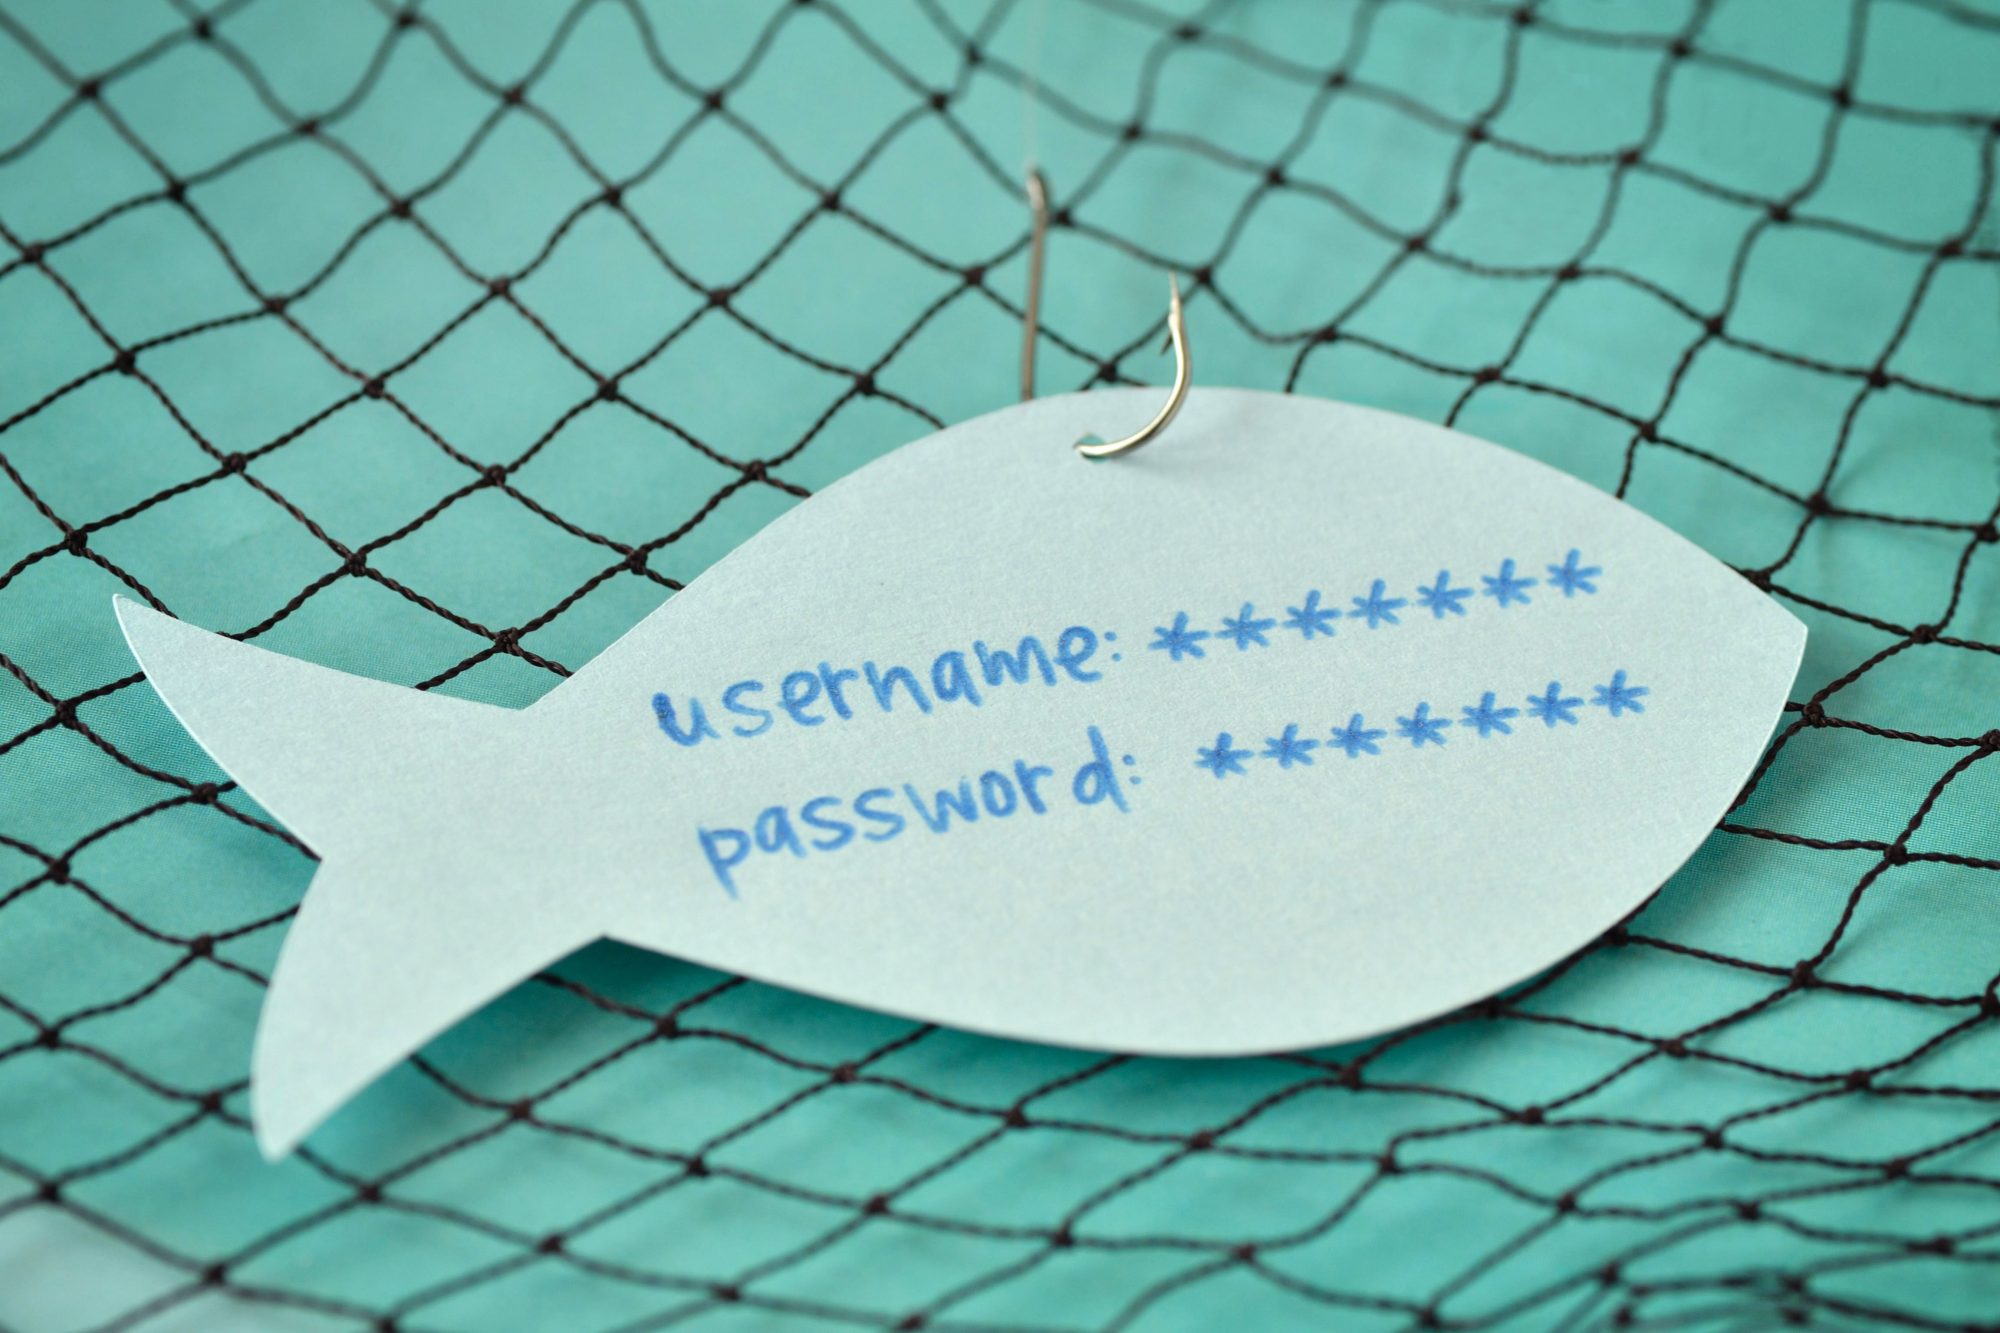 Username and Password